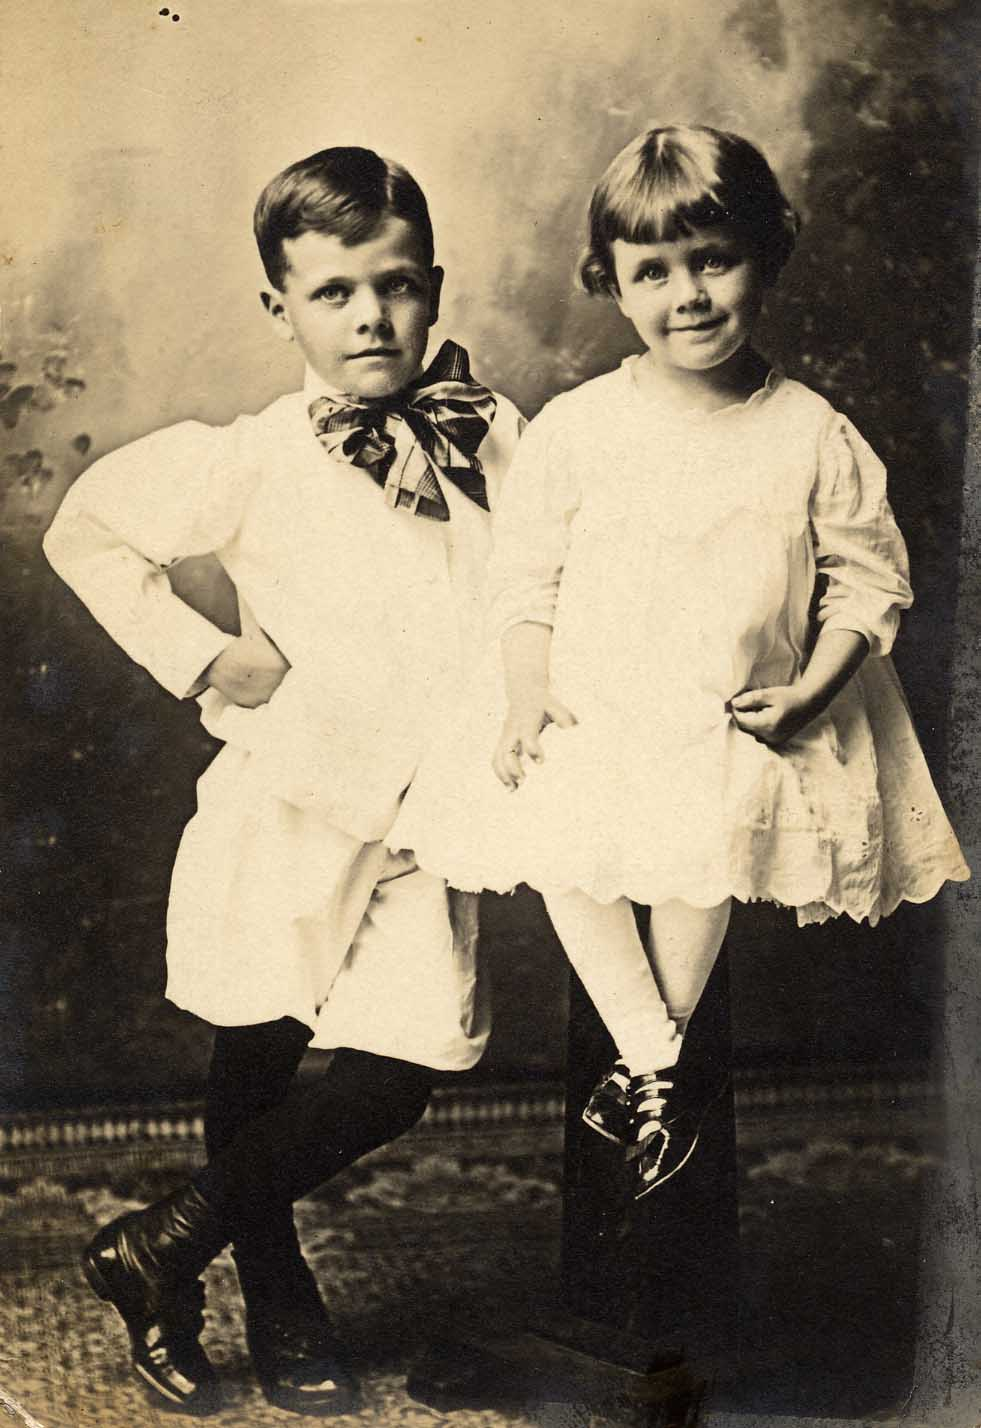 [Photo: Dorothy and her brother